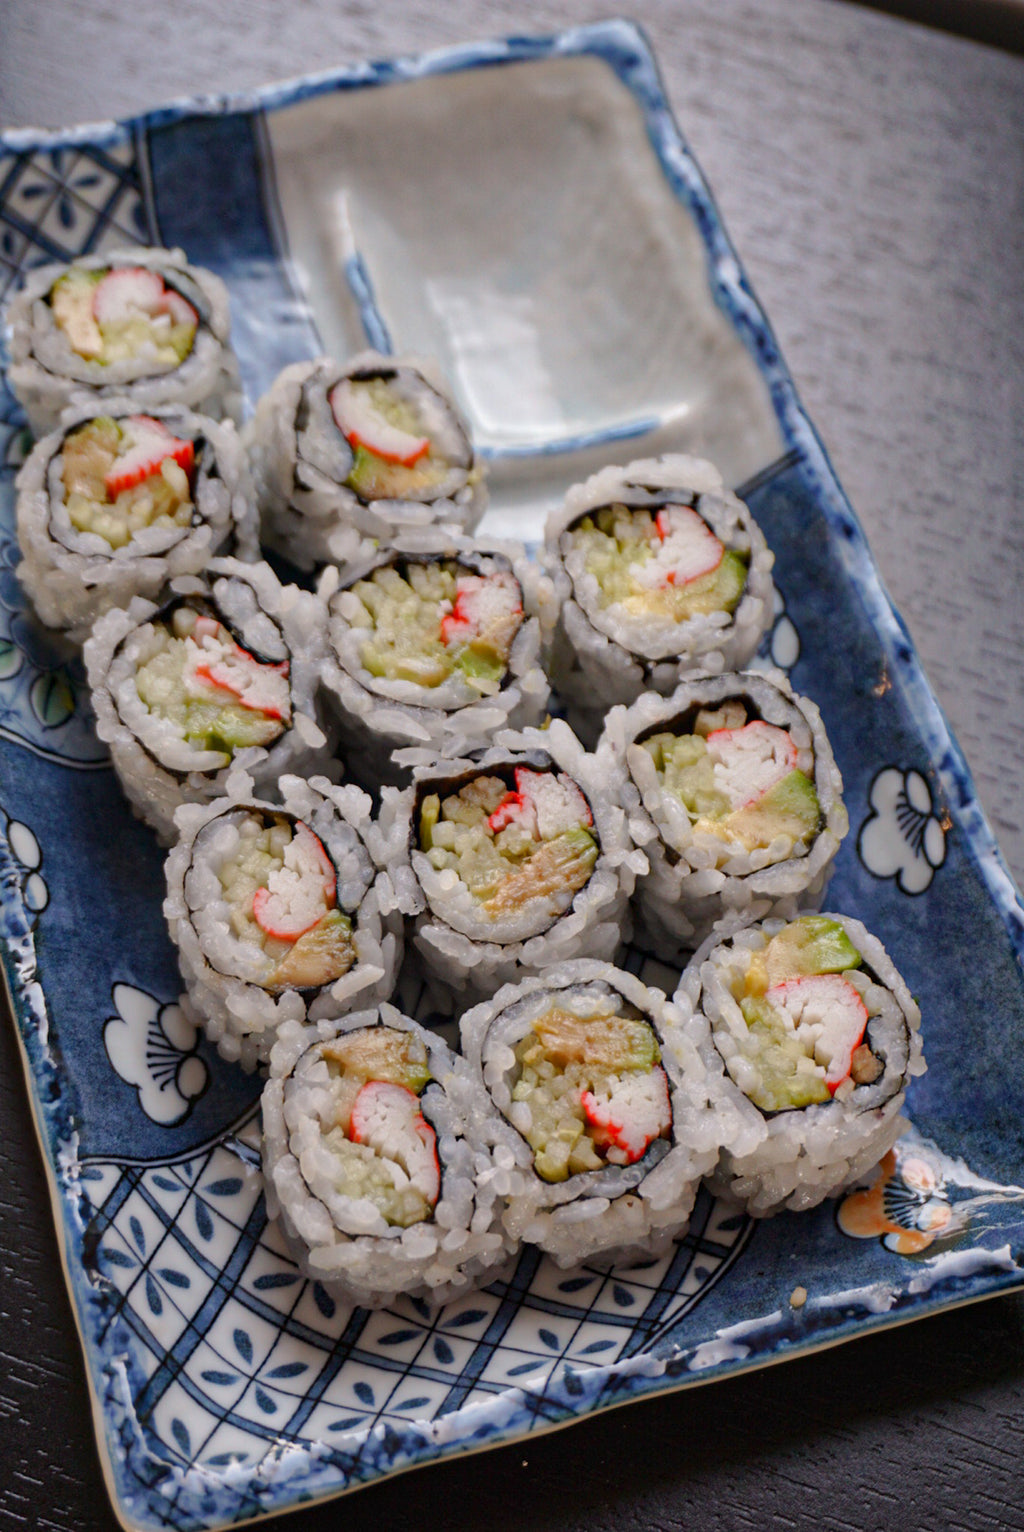 California Roll - Delivery